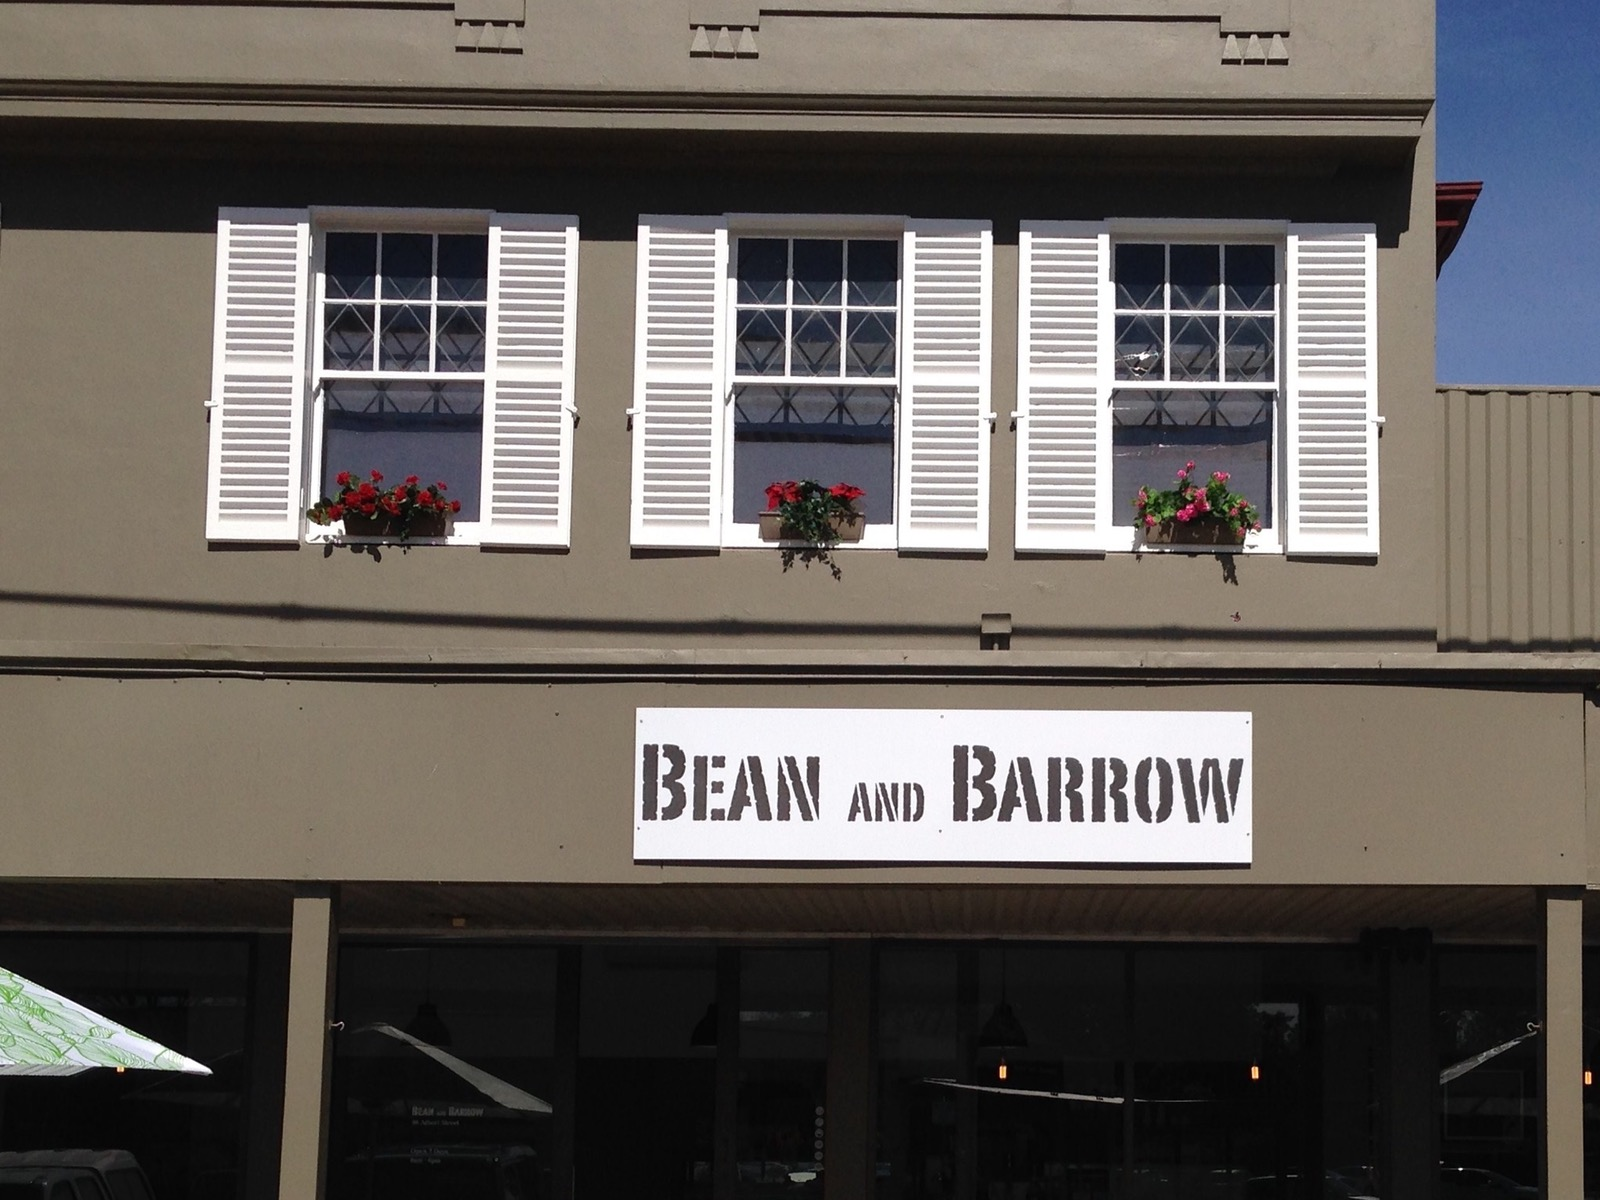 Bean and Barrow